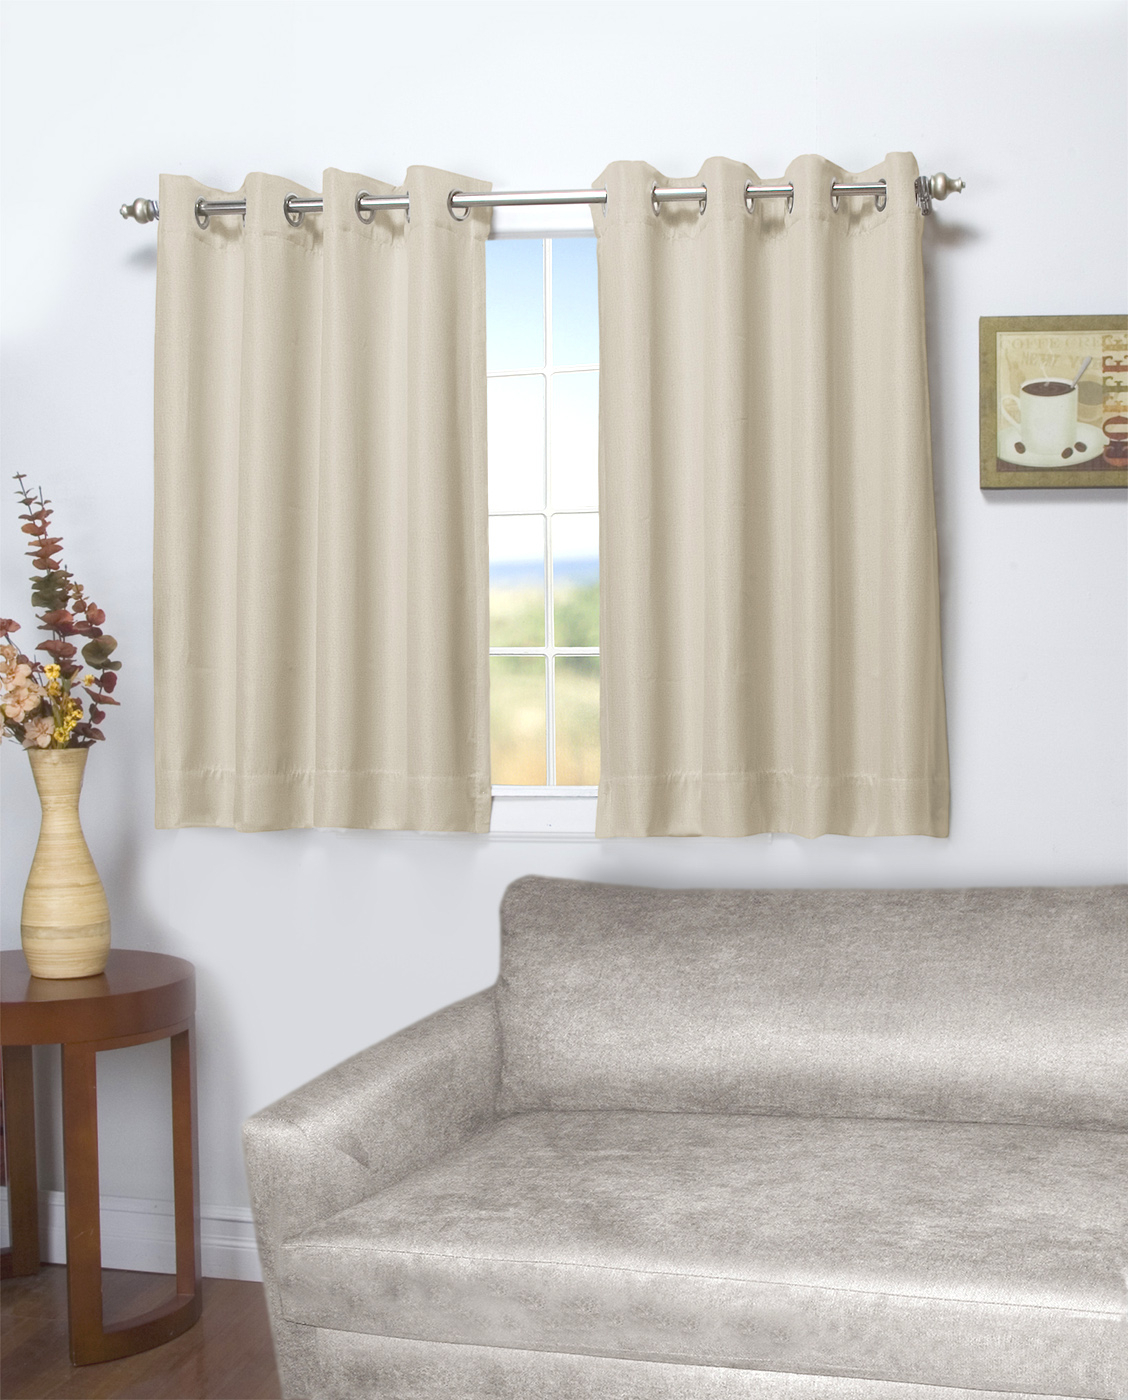 45 Inch Long Curtains – Thecurtainshop In Ultimate Blackout Short Length Grommet Curtain Panels (View 23 of 30)